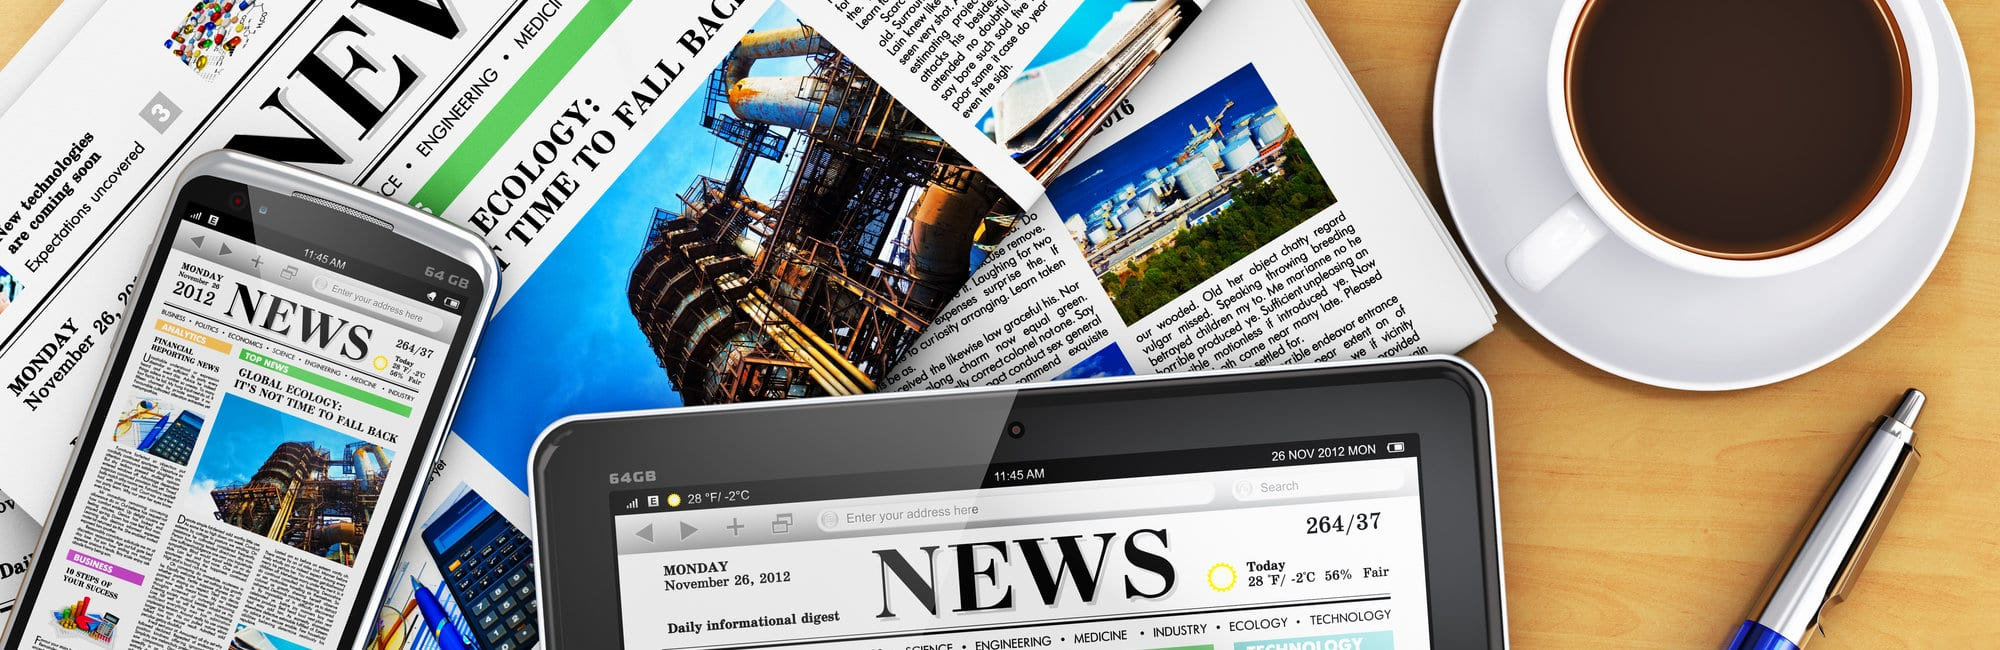 Creative business corporate work concept: tablet computer PC, modern black glossy touchscreen smartphone with news internet web site, stack of newspapers, cup or mug of fresh coffee and metal ballpoint pen on wooden office table